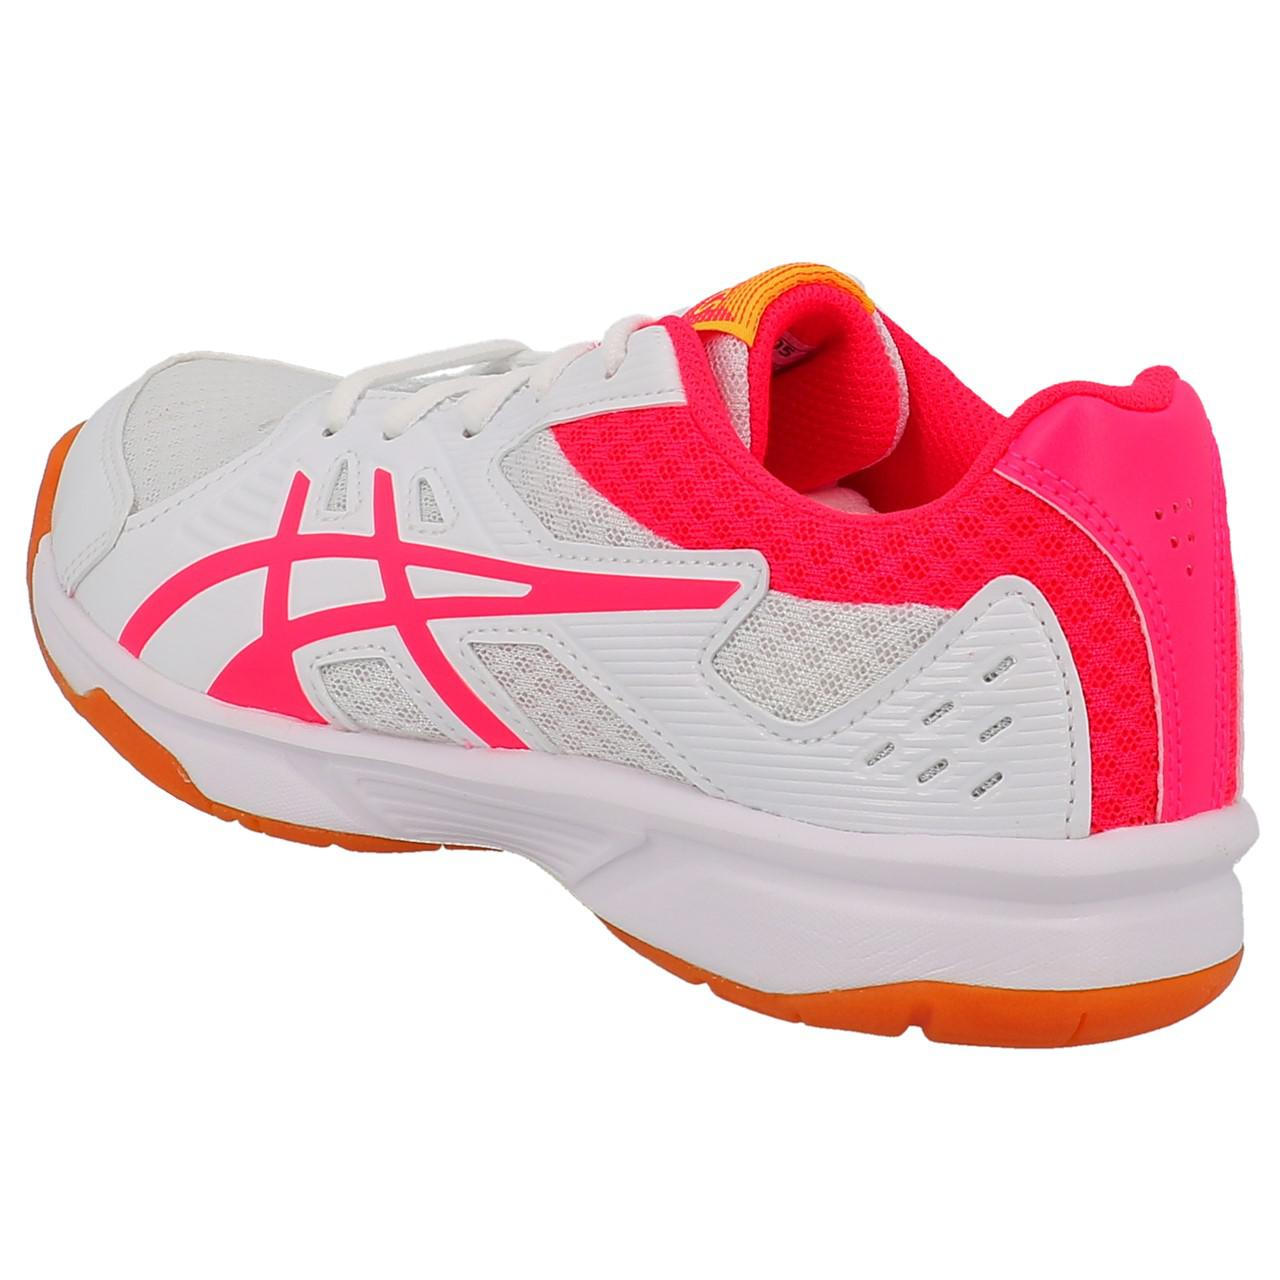 Shoes-Volleyball-Basketball-Asics-Upcourt-3-Wht-Indoor-G-White-19557-New thumbnail 3